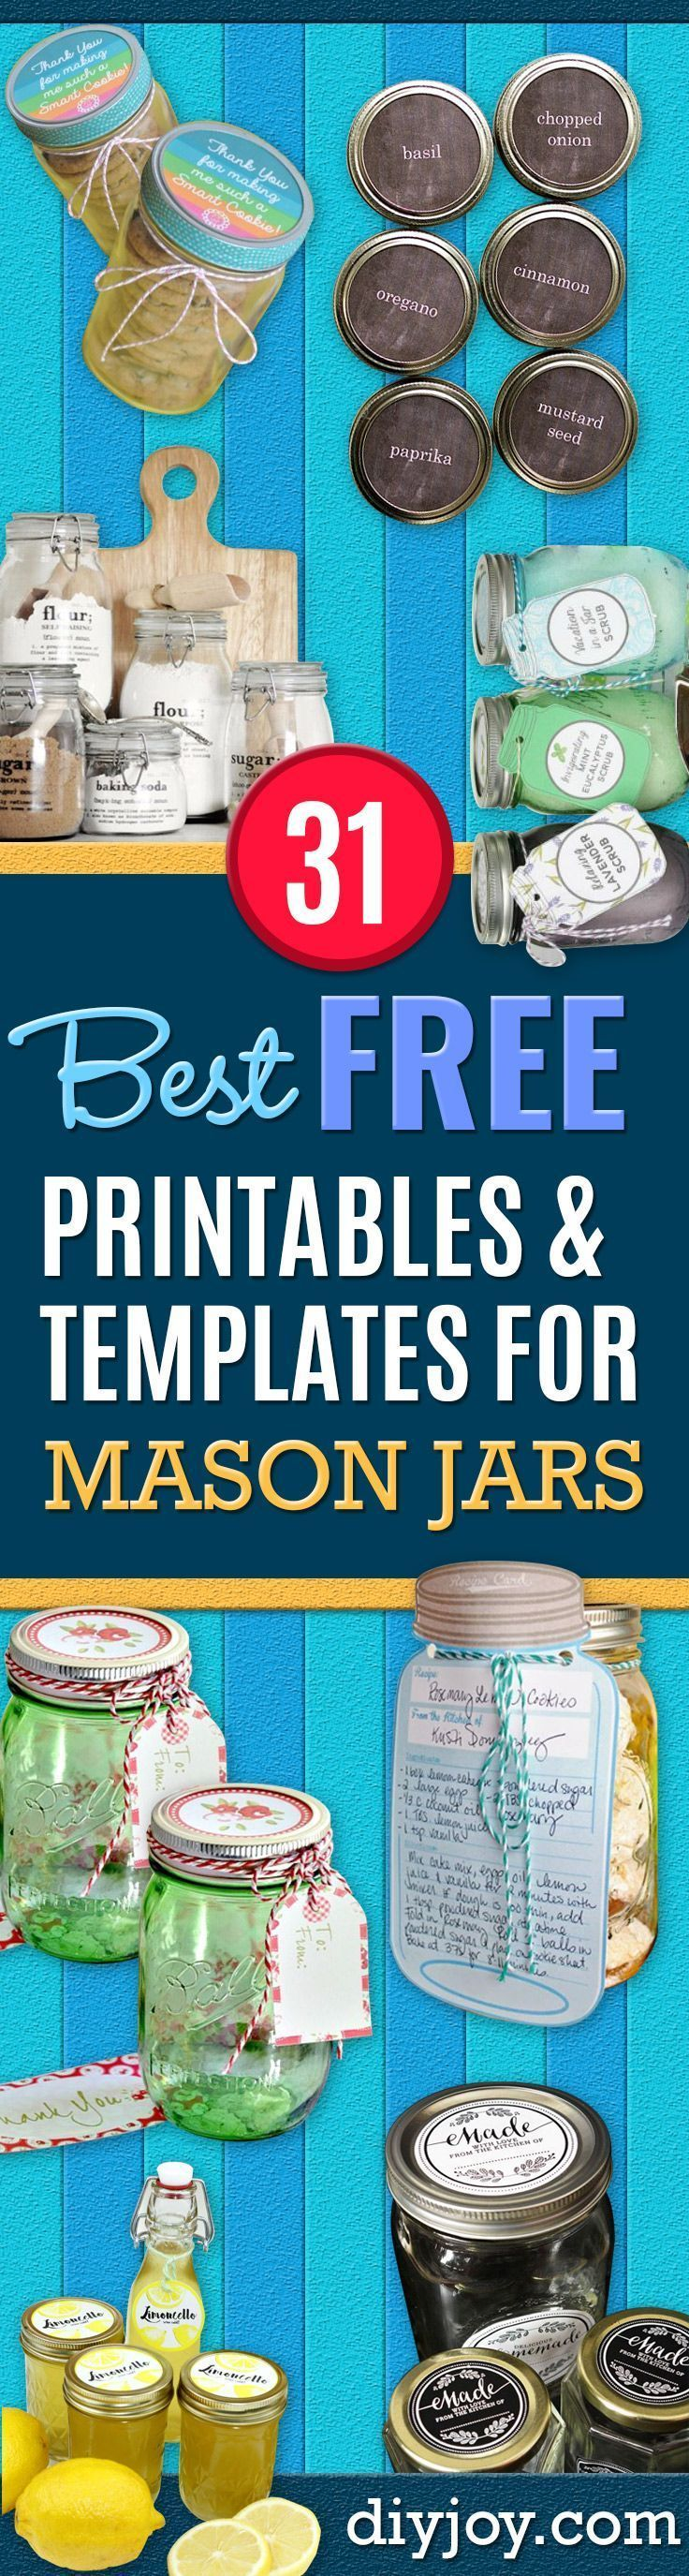 Free Printables for Mason Jars - Best Ideas for Tags and Printable Clip Art for Fun Mason Jar Gifts and Organization - Sugar scrub, Teacher Gifts, Valentines, Cookie Mixes, Party Favors, Wedding Holidays and Fun Recipes - DIY Mason Jar Gifts and Home Decor Crafts by DIY JOY http://diyjoy.com/free-printables-mason-jars #DIYHomeDecorMasonJars